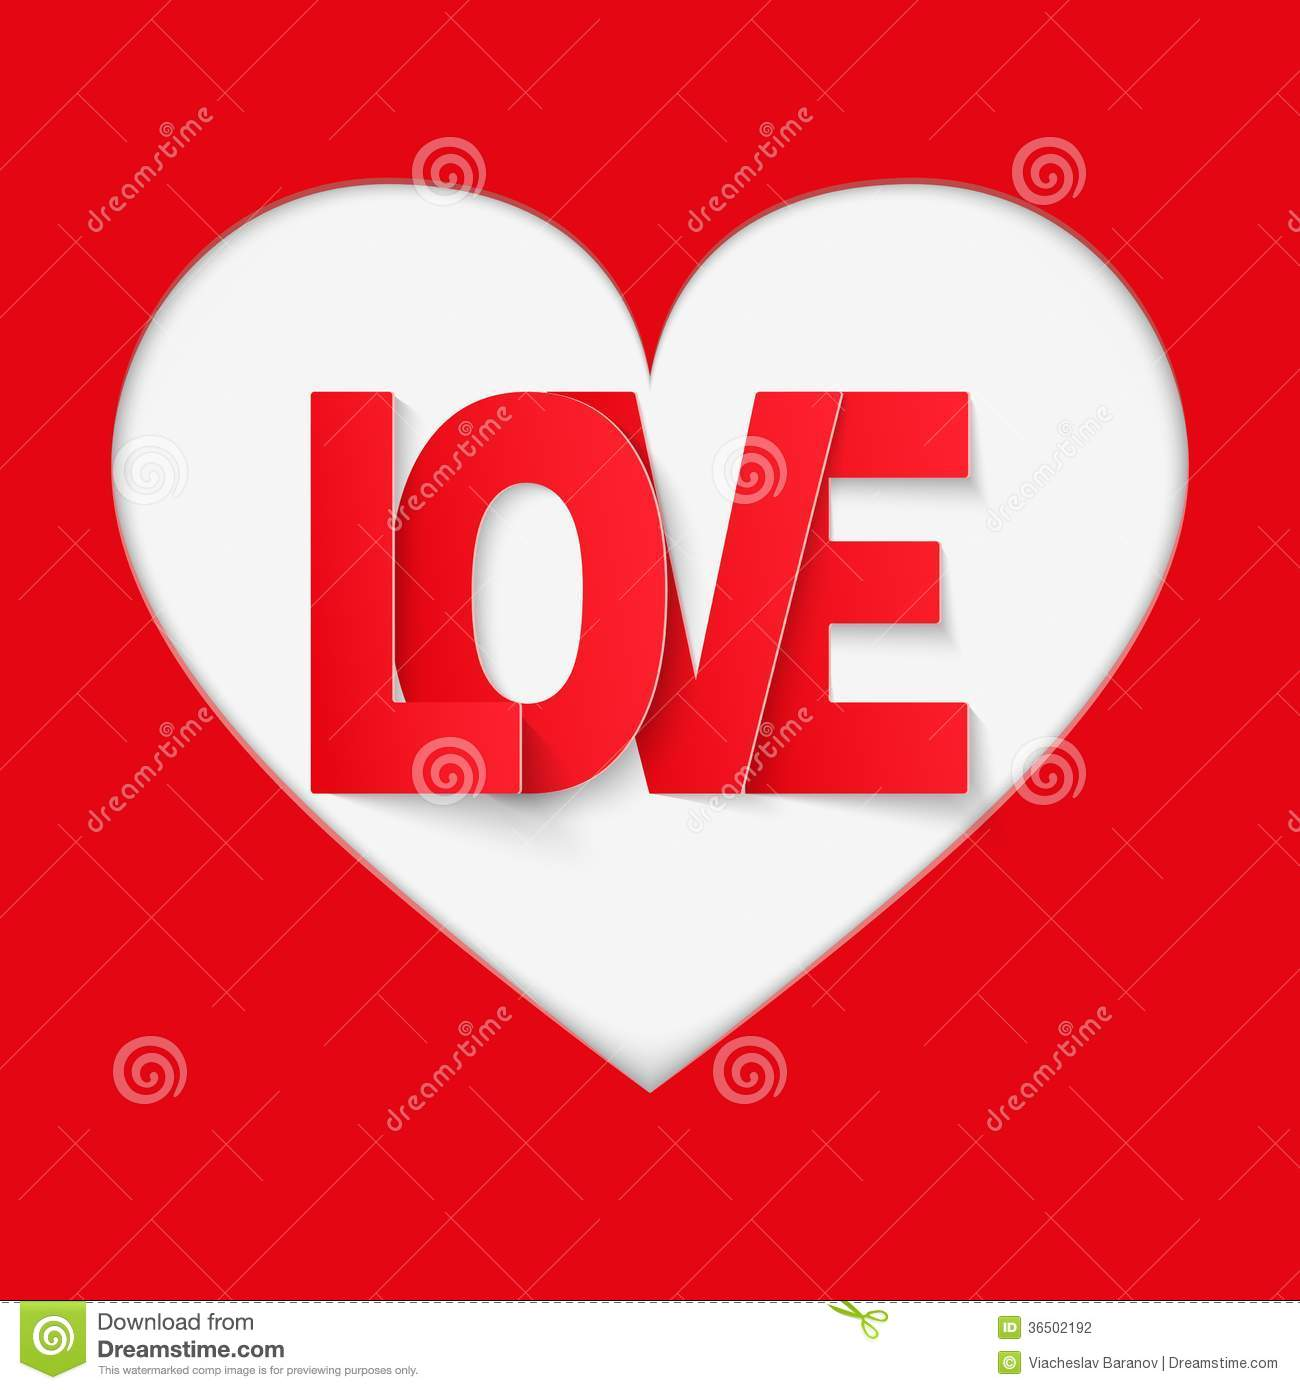 Background Red Letter Love Stock Photography - Image: 36502192